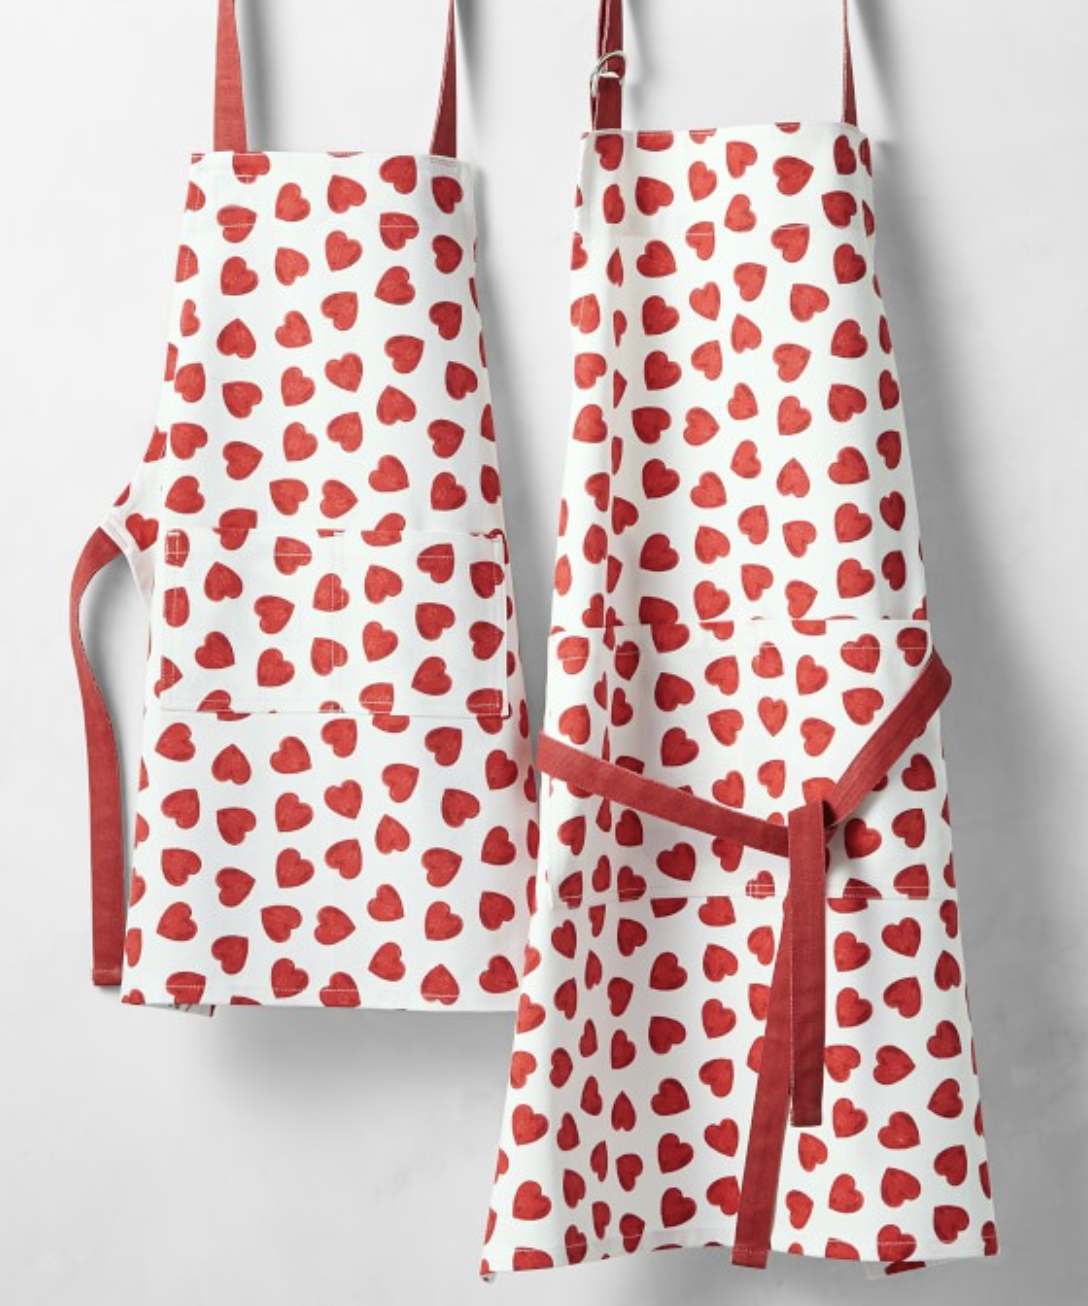 Heart Apron for Valentine's Day Gift for Kids